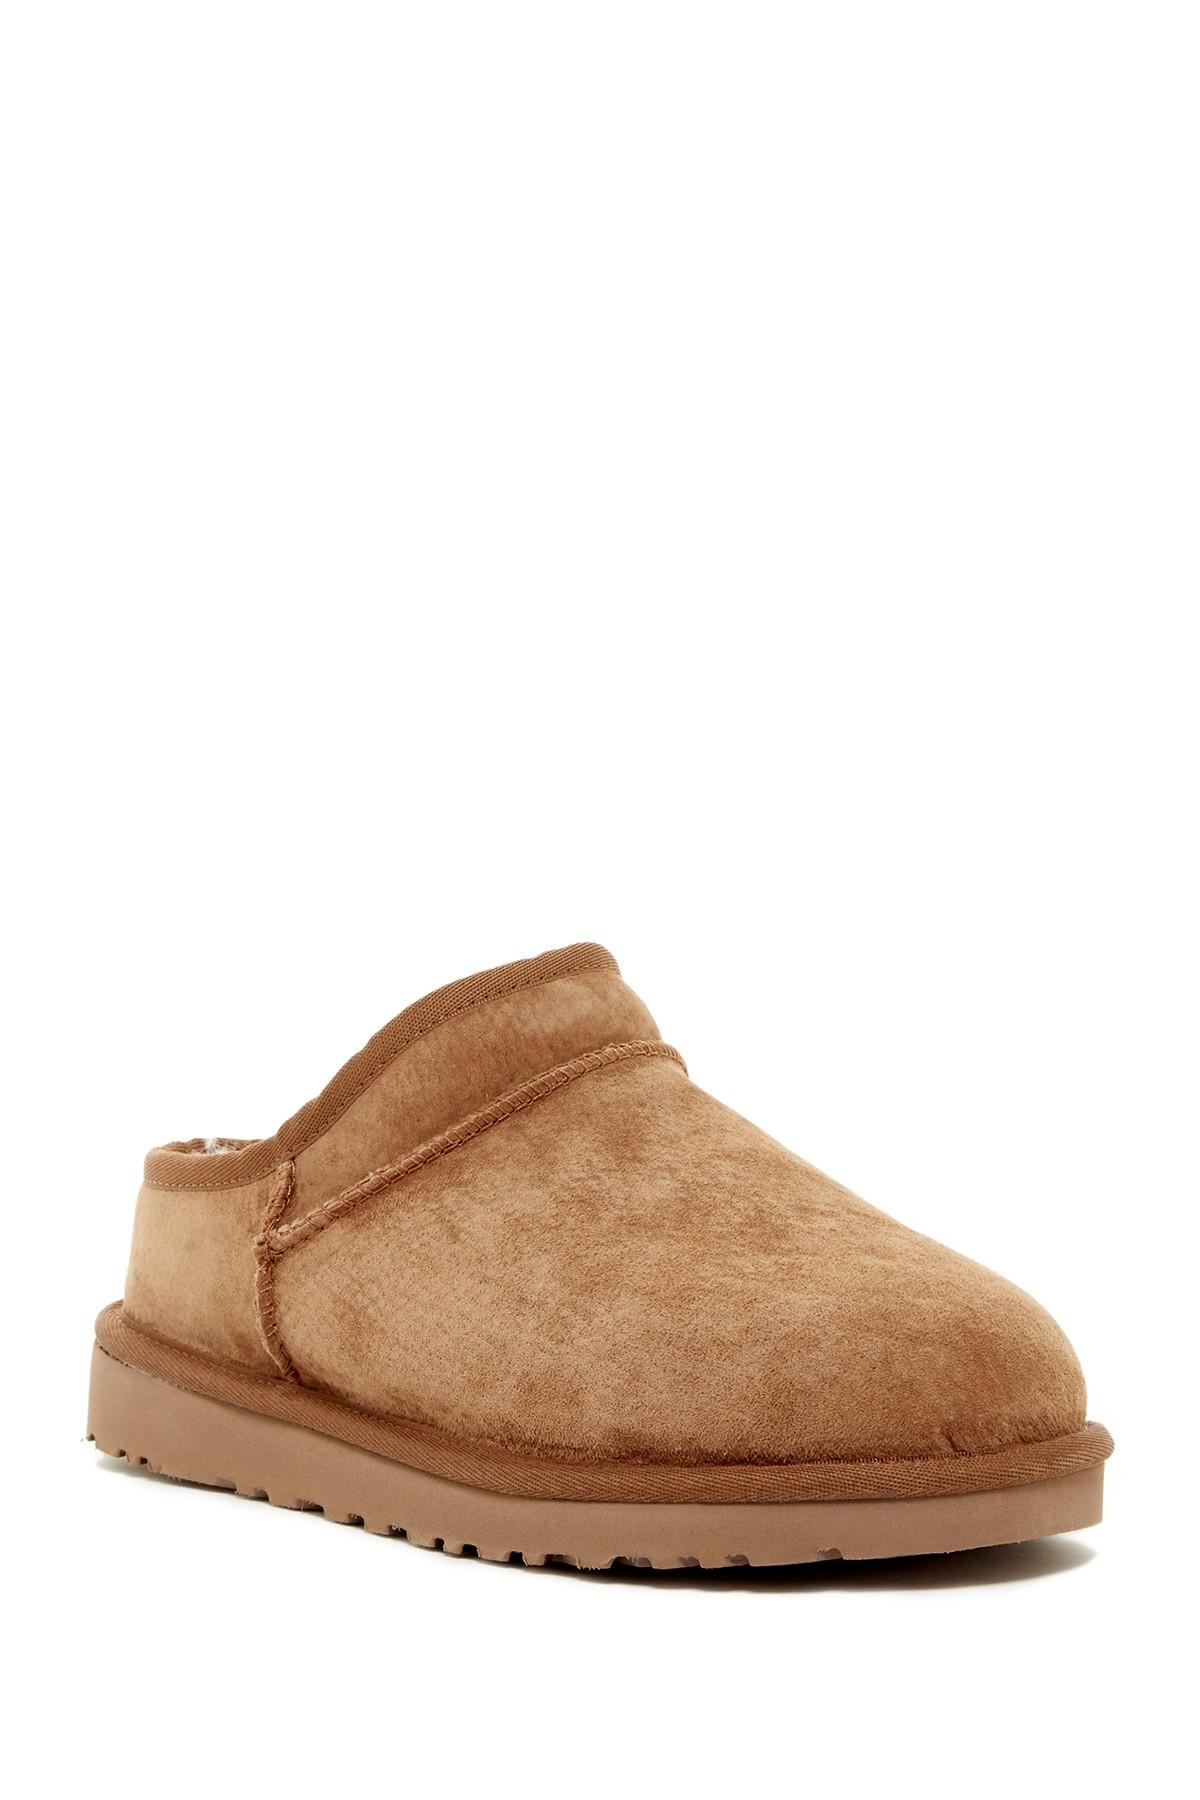 UGG Australia Suede Shearling Slippers store for sale cheap price outlet outlet order XL3sBG